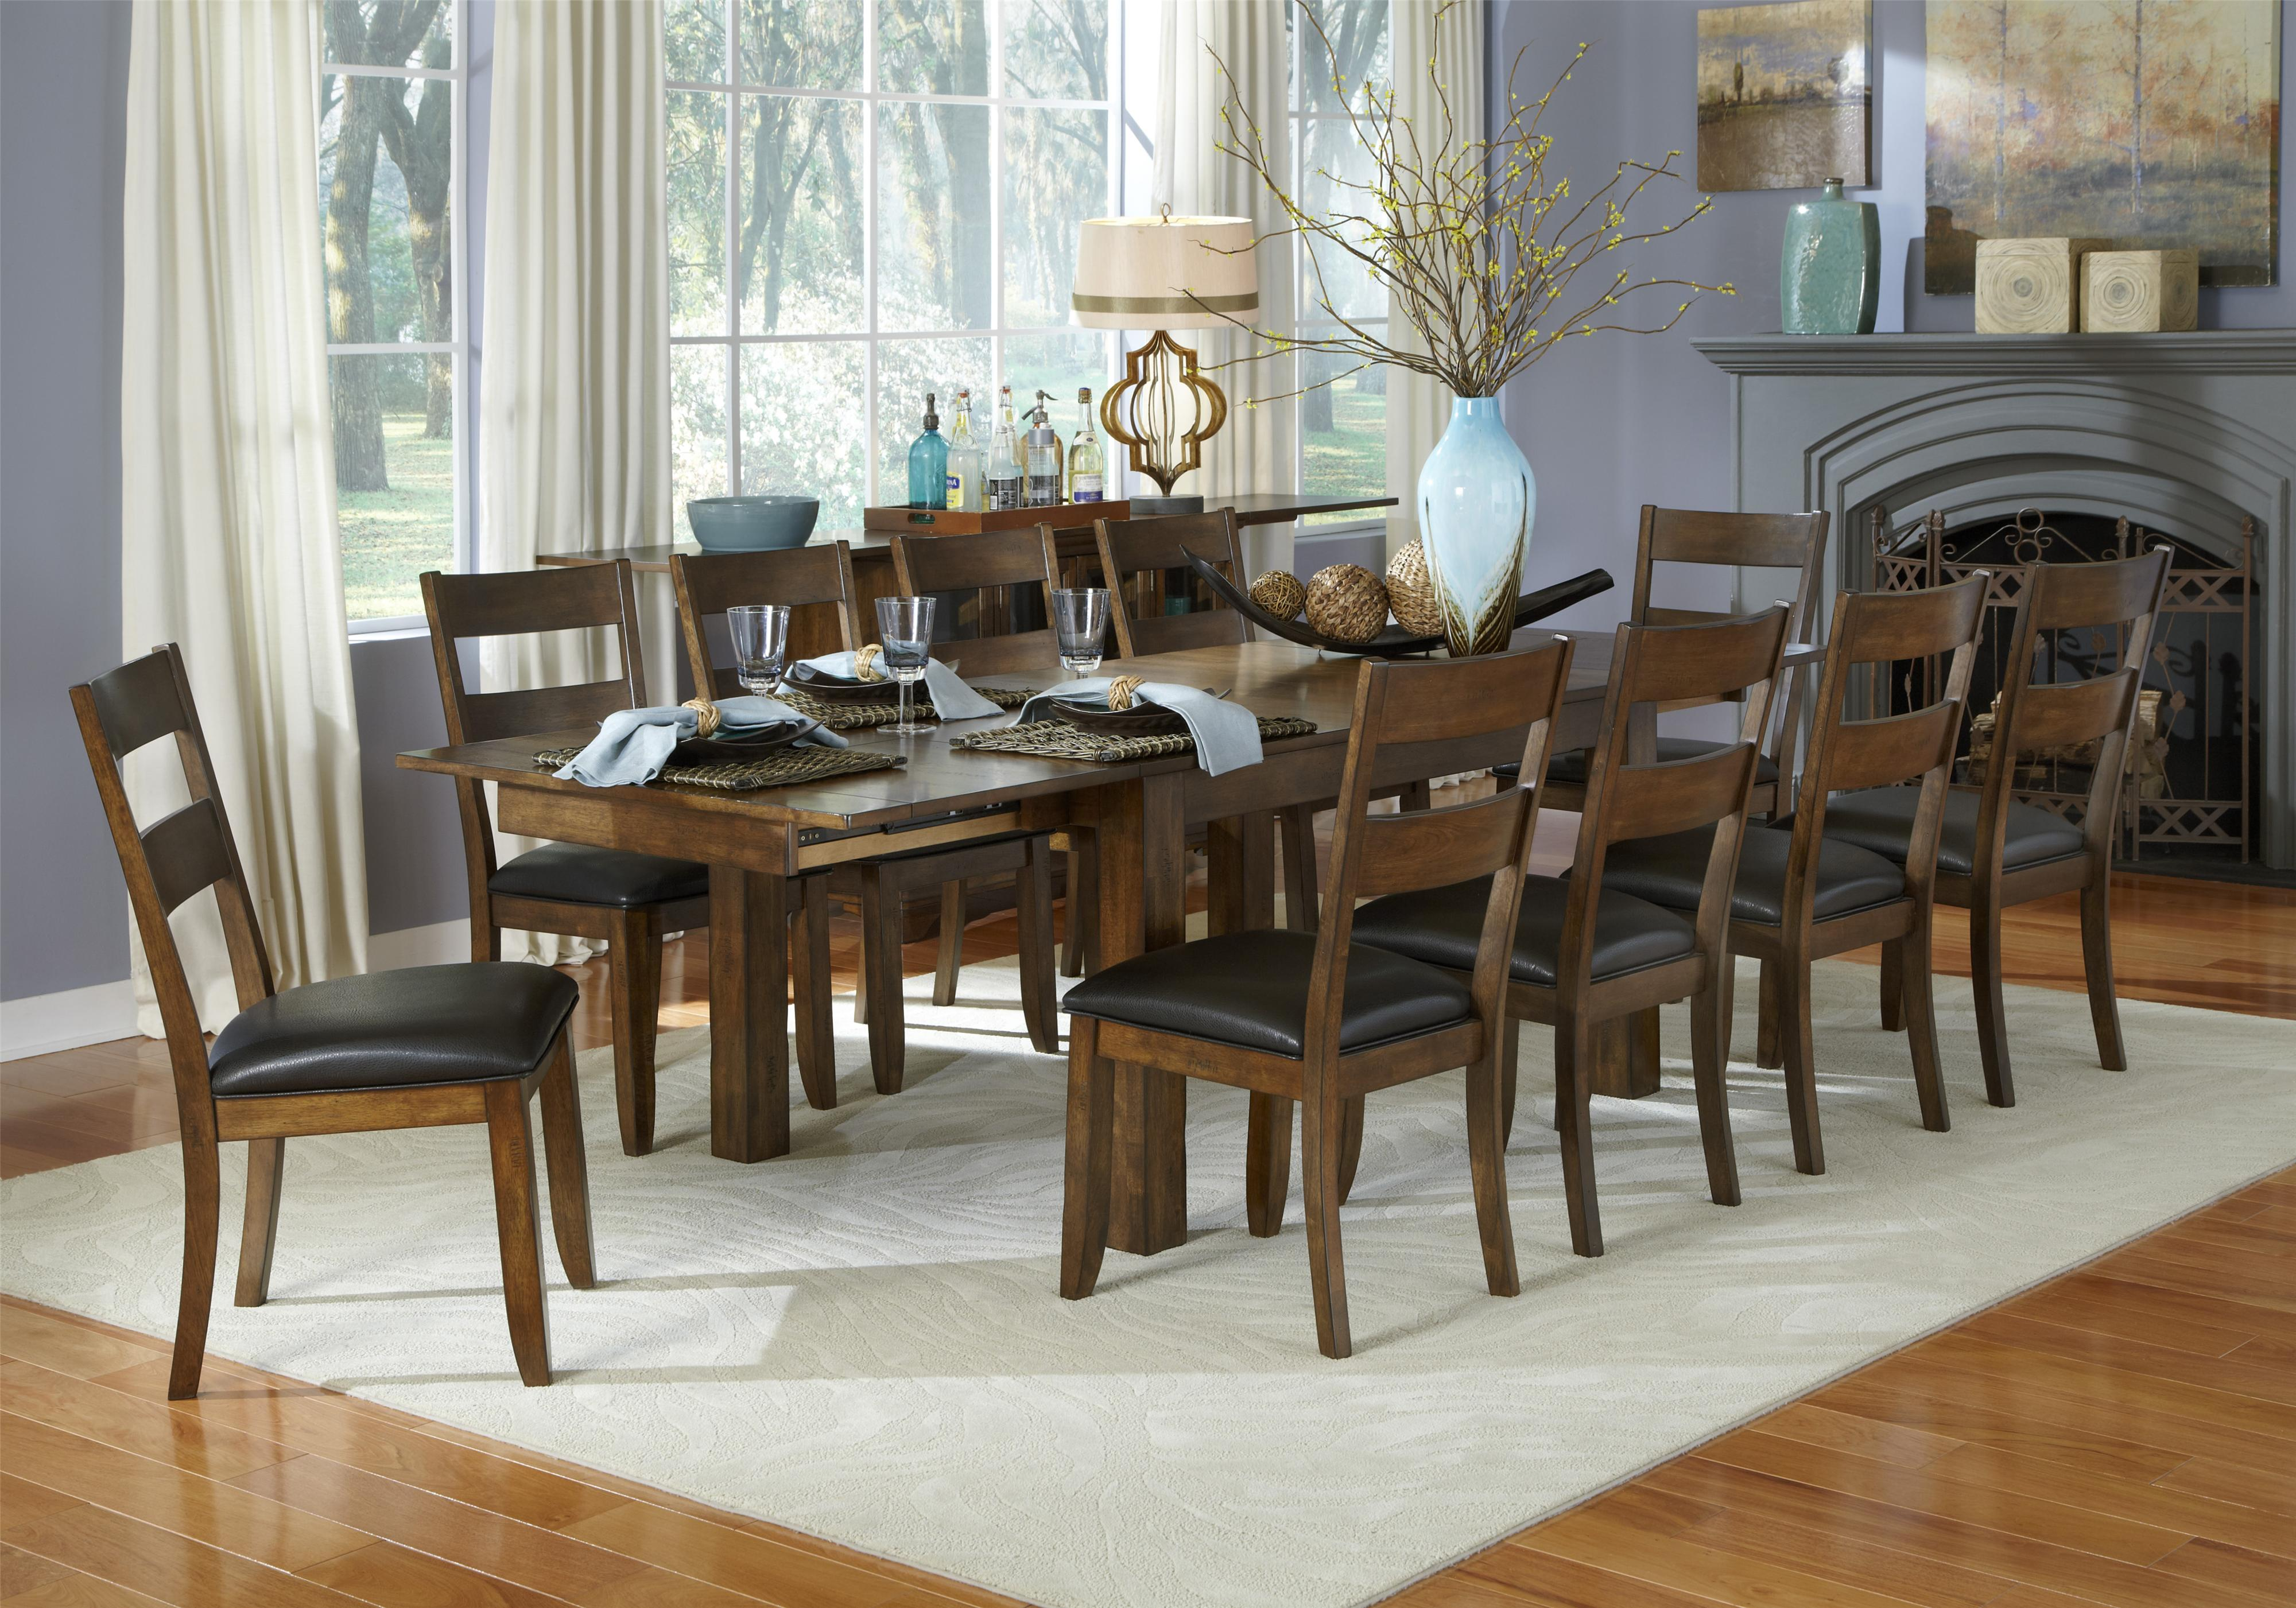 Aamerica mariposa 11 piece table and ladderback chairs set for 11 piece dining table set